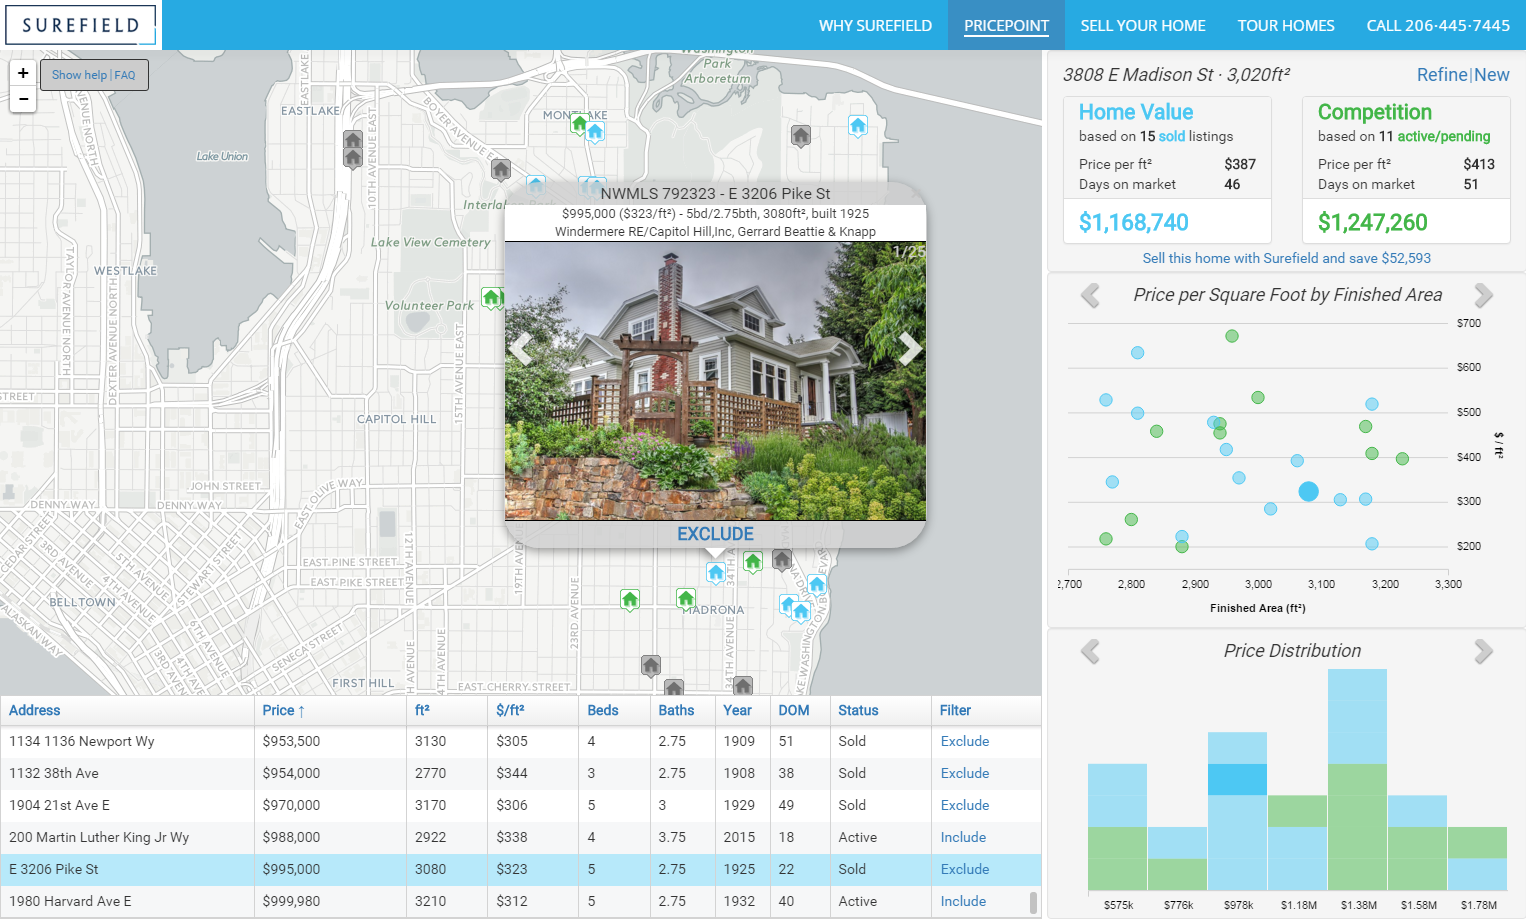 Surefield Releases New Map-Based Home Pricing Tool to ... on airbnb seattle, redfin seattle, adobe seattle, craiglist seattle, expeditors international seattle, mls seattle, tripadvisor seattle, zipcar seattle, apartment guide seattle, estately seattle, ibm seattle, real estate seattle, yelp seattle, urbanspoon seattle, geekwire seattle, groupon seattle, linkedin seattle, avalara seattle, windermere seattle,